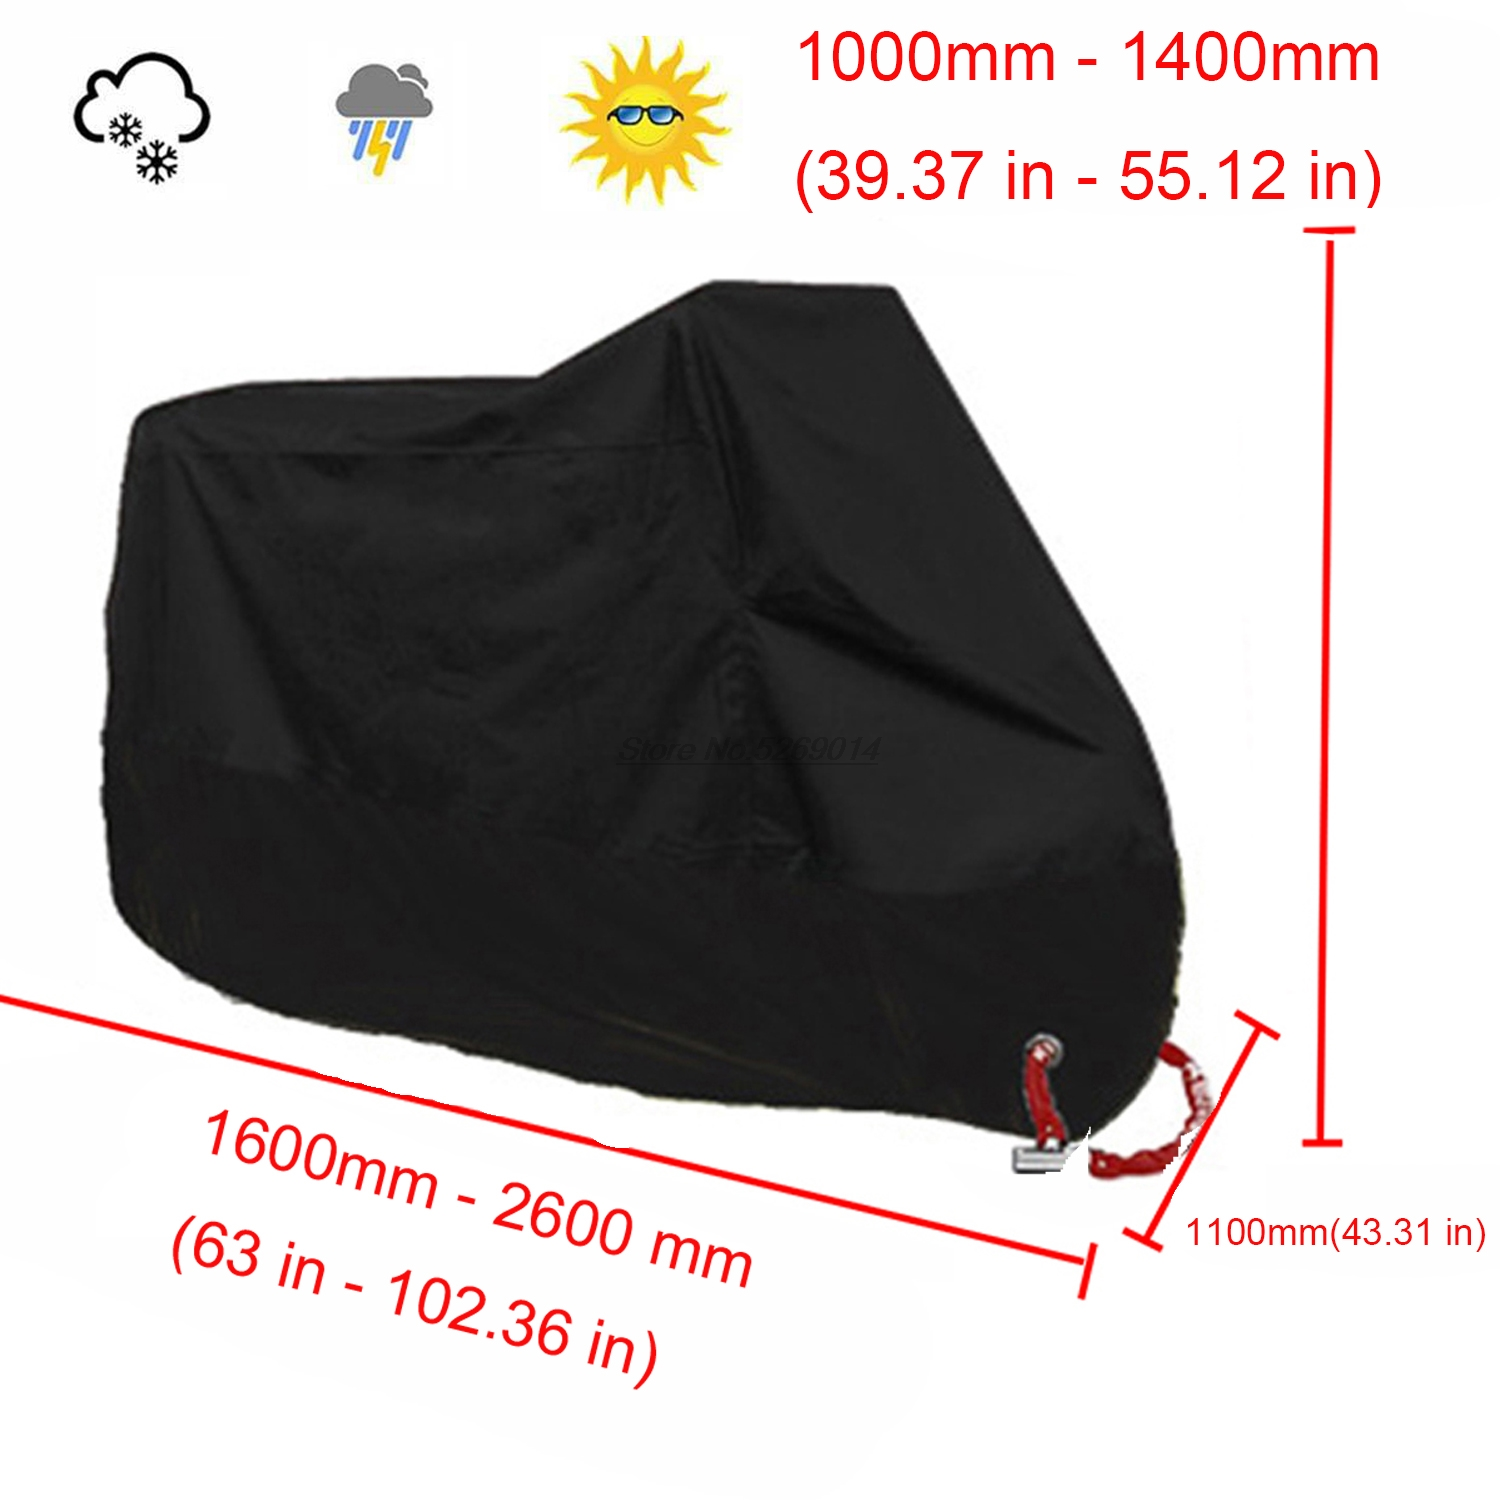 Motorcycle covers UV anti for r1100gs center stand motorcycle honda crm honda gloves fzs600 <font><b>gsxr</b></font> k7 kawasaki zzr <font><b>1100</b></font> fzs 1000 image